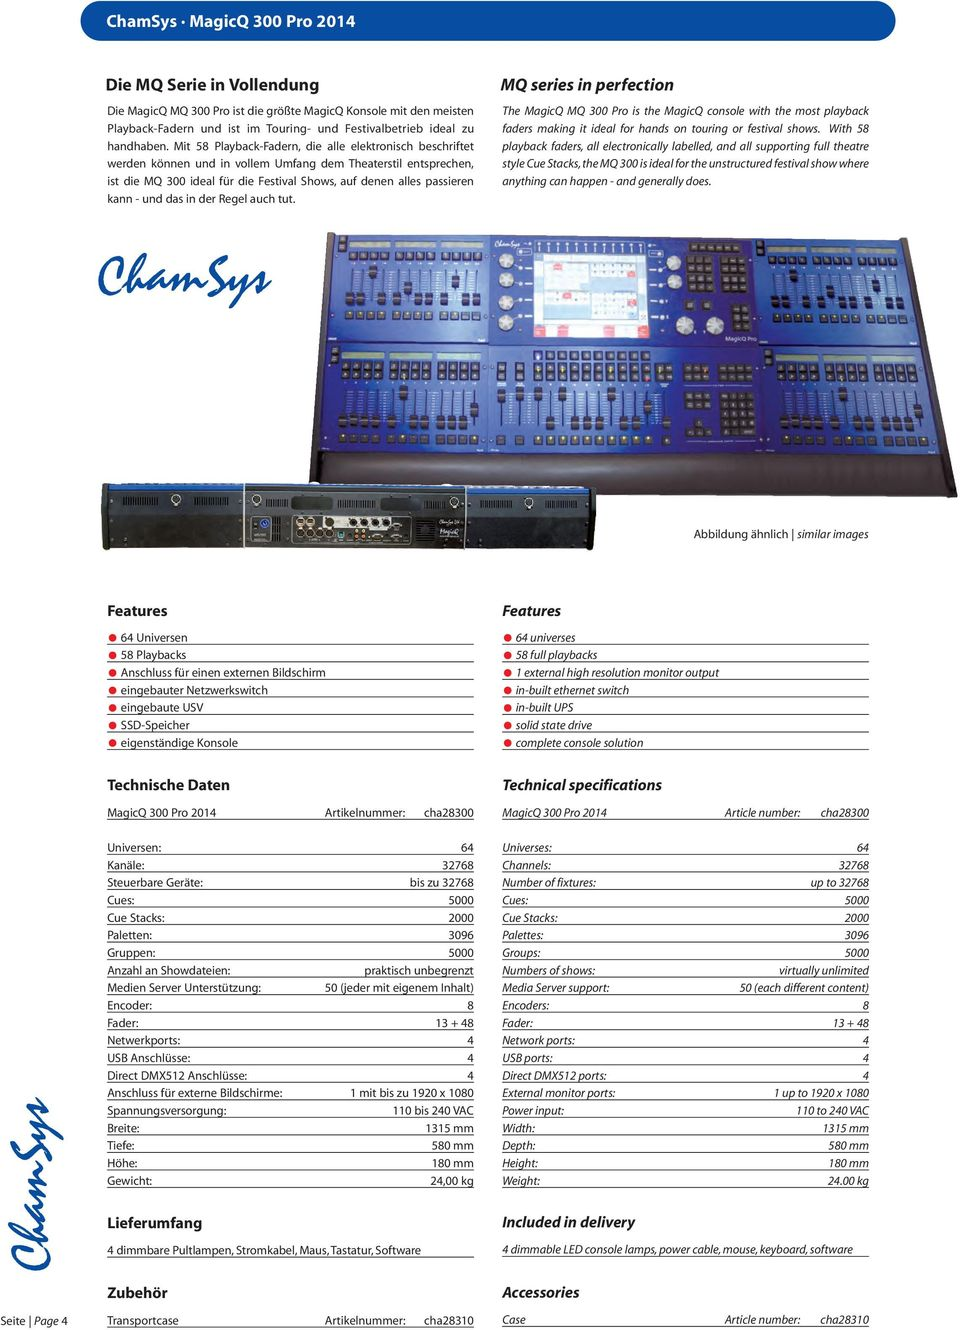 und das in der Regel auch tut. MQ series in perfection The MagicQ MQ 300 Pro is the MagicQ console with the most playback faders making it ideal for hands on touring or festival shows.